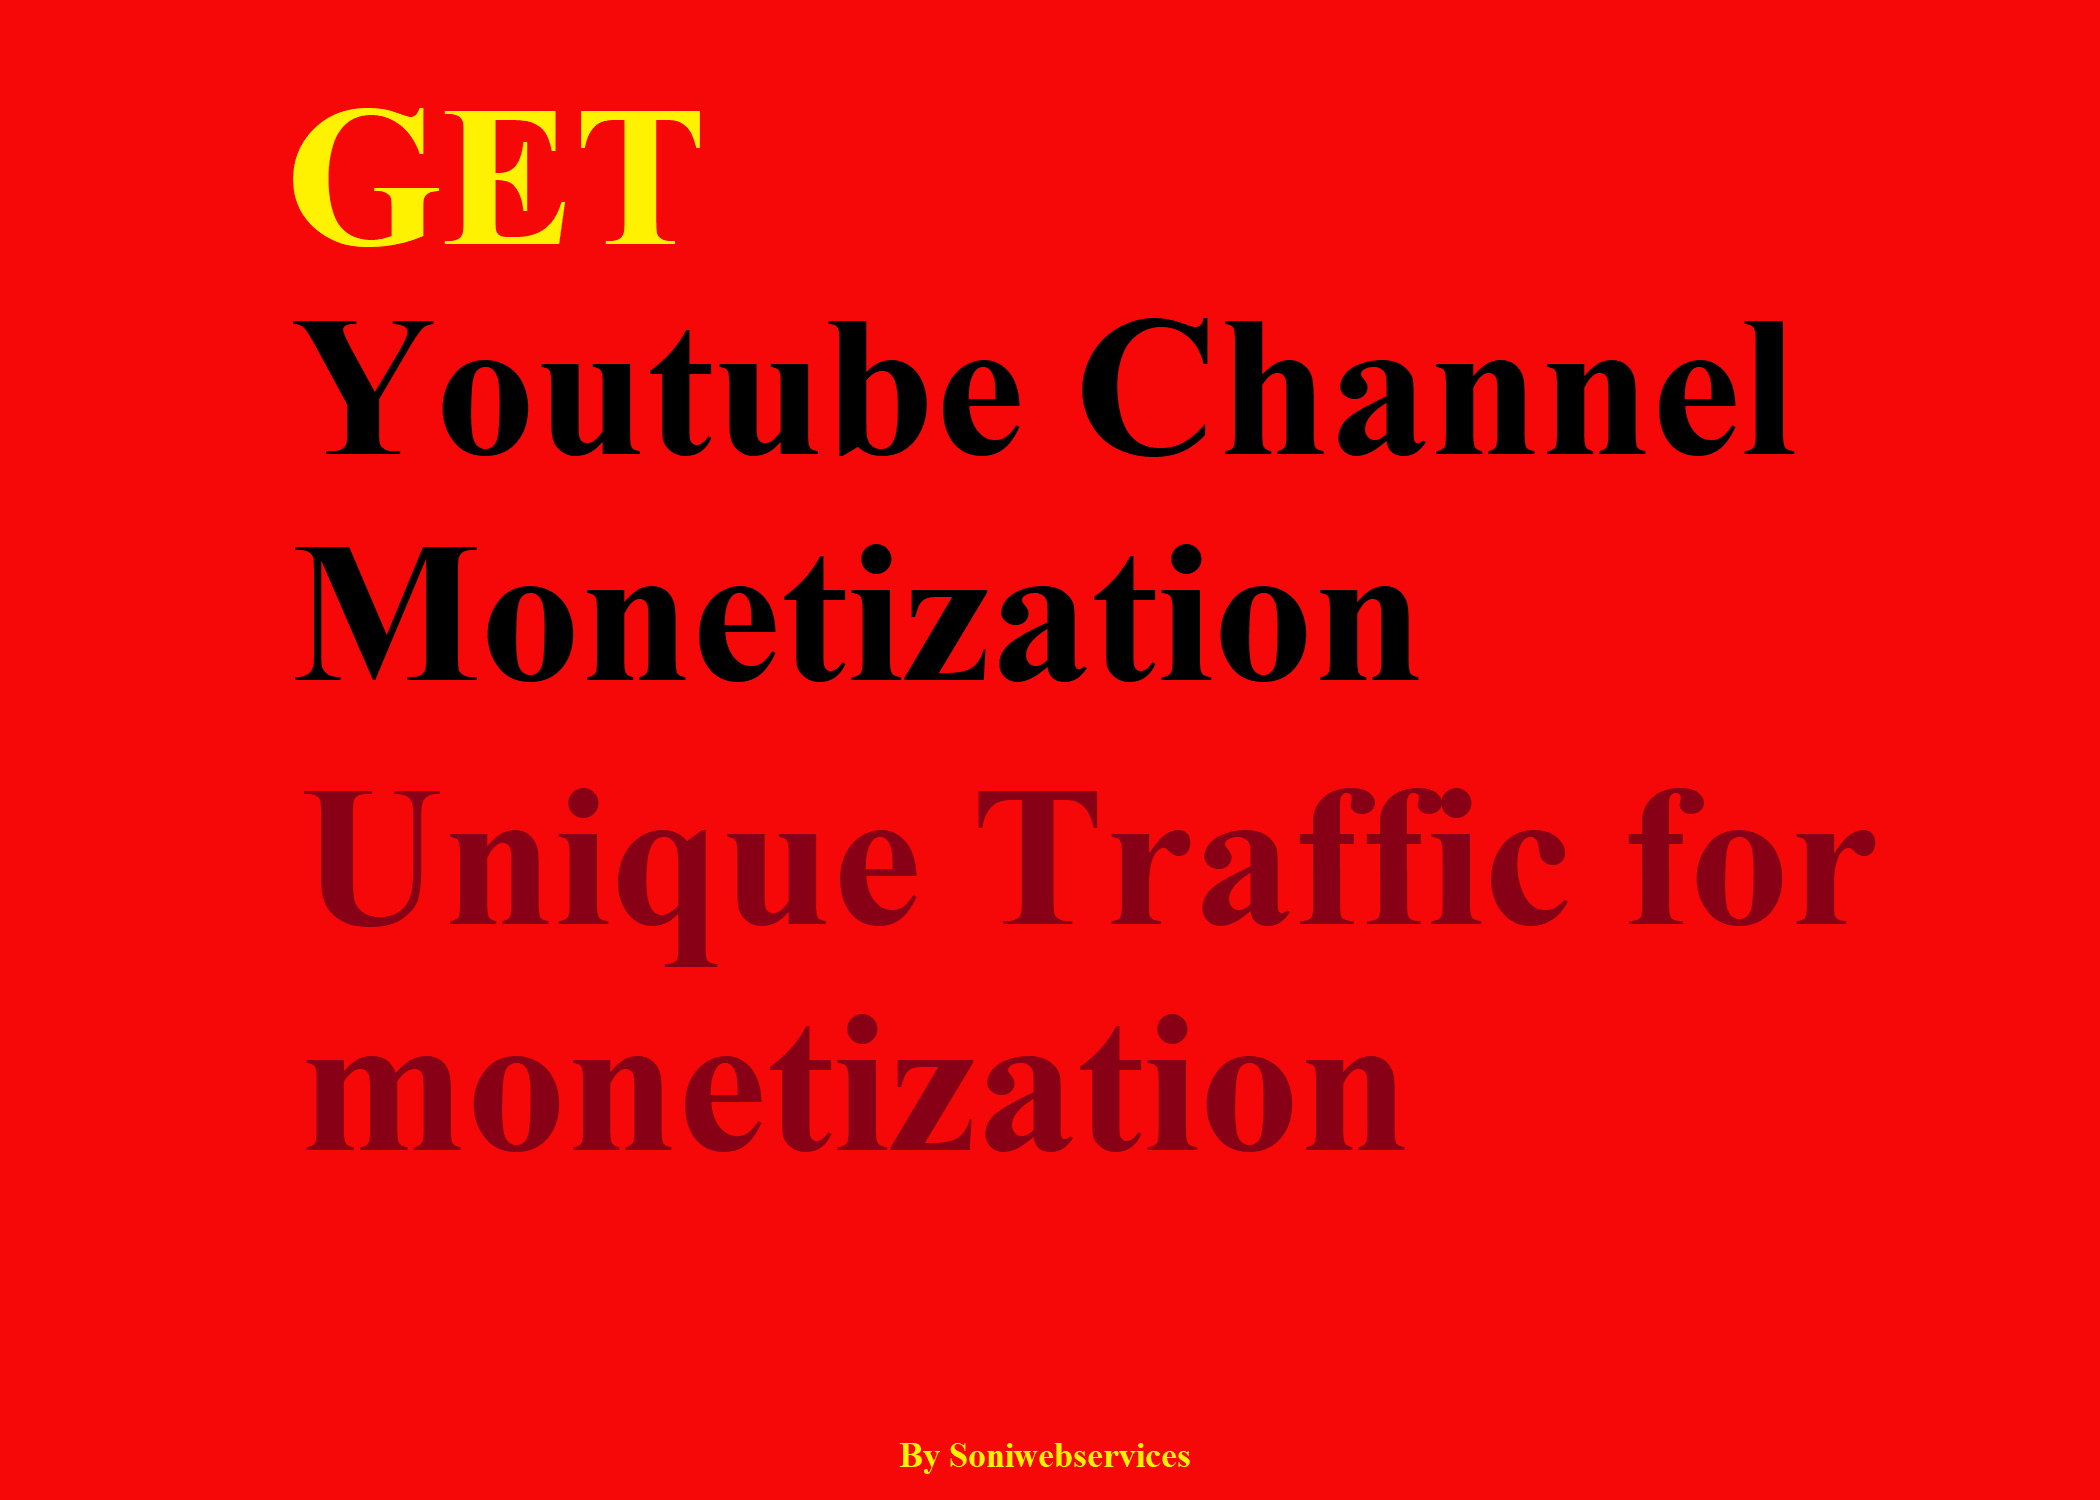 Get Youtube Monetization with real traffic